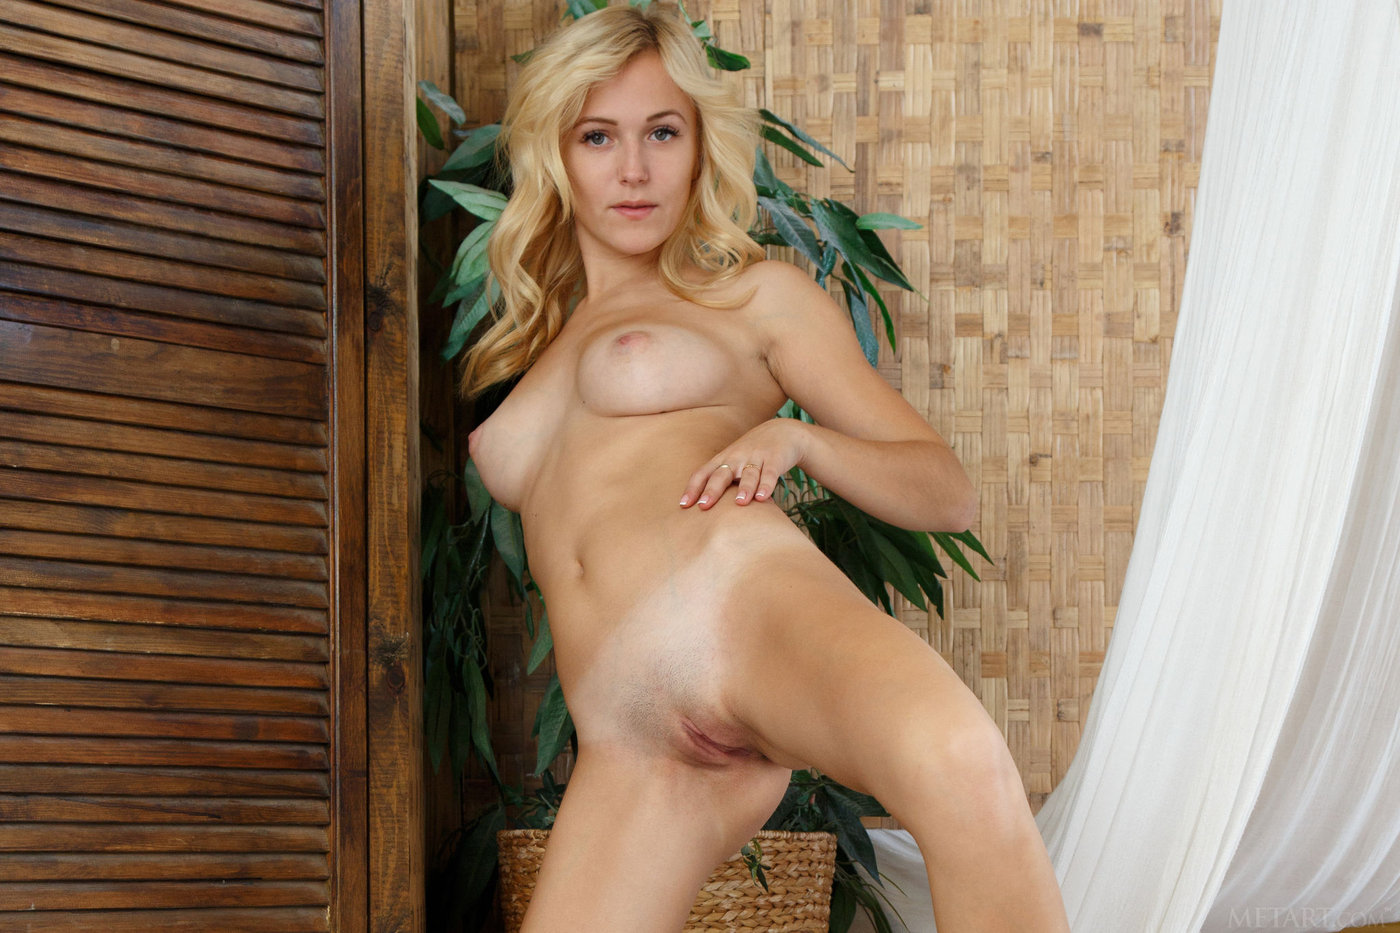 Wavy-haired blonde just woke up, she's ready to get naked and masturbate